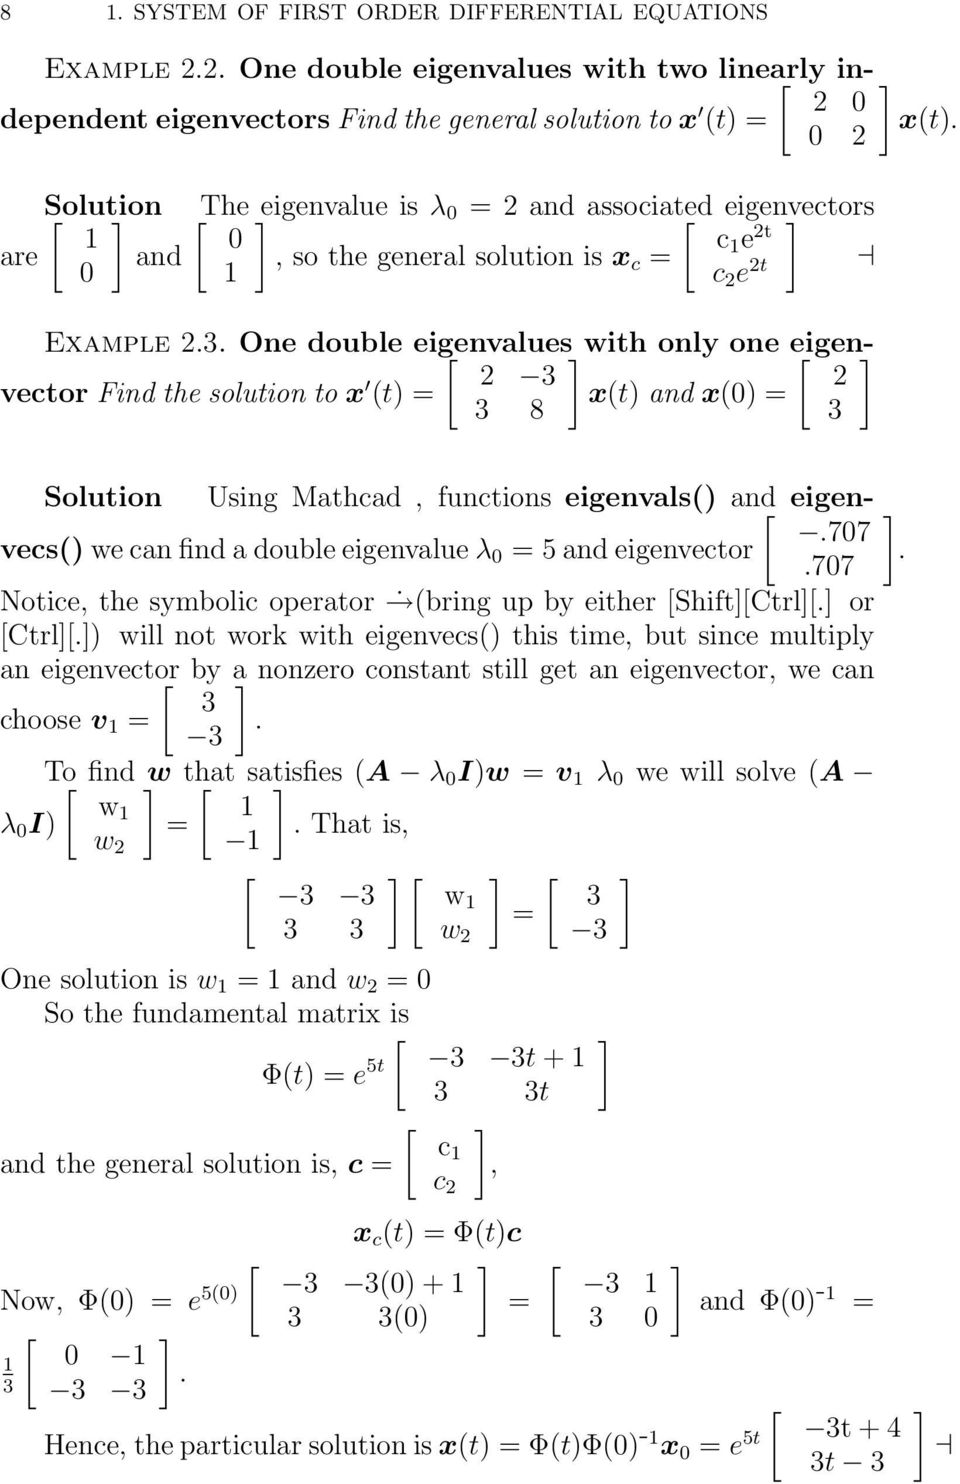 One double eigenvalues with only one eigenvector Find the solution to x (t) = x(t) and x() = 3 3 8 3 Solution Using Mathcad, functions eigenvals() and [ eigenvecs() we can find a double eigenvalue λ